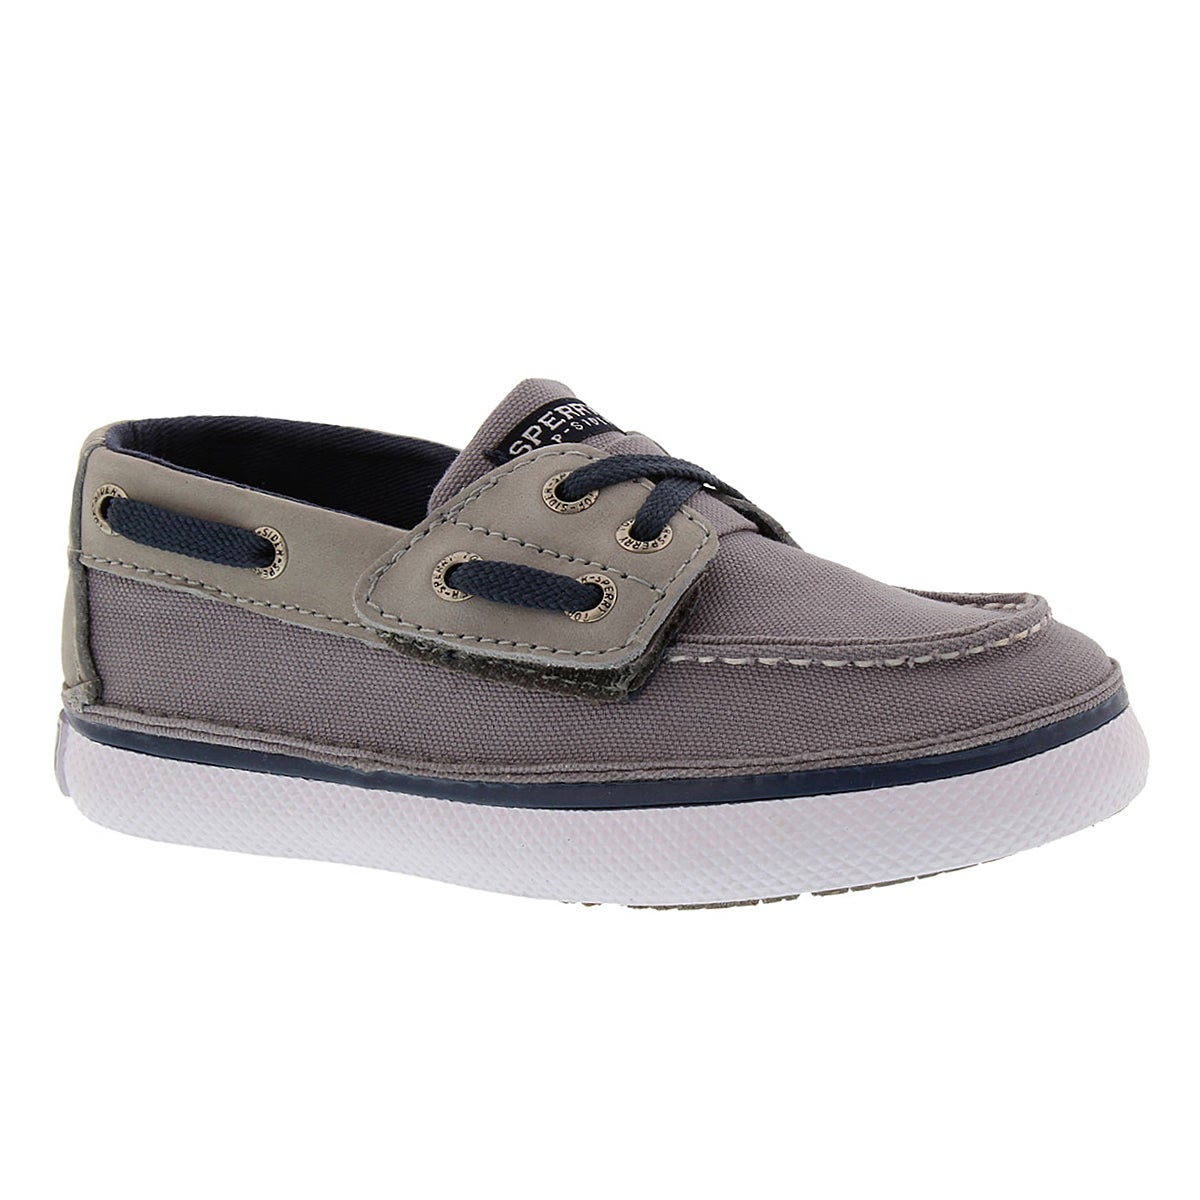 Inf Cruz Jr. grey/nvy boat shoe